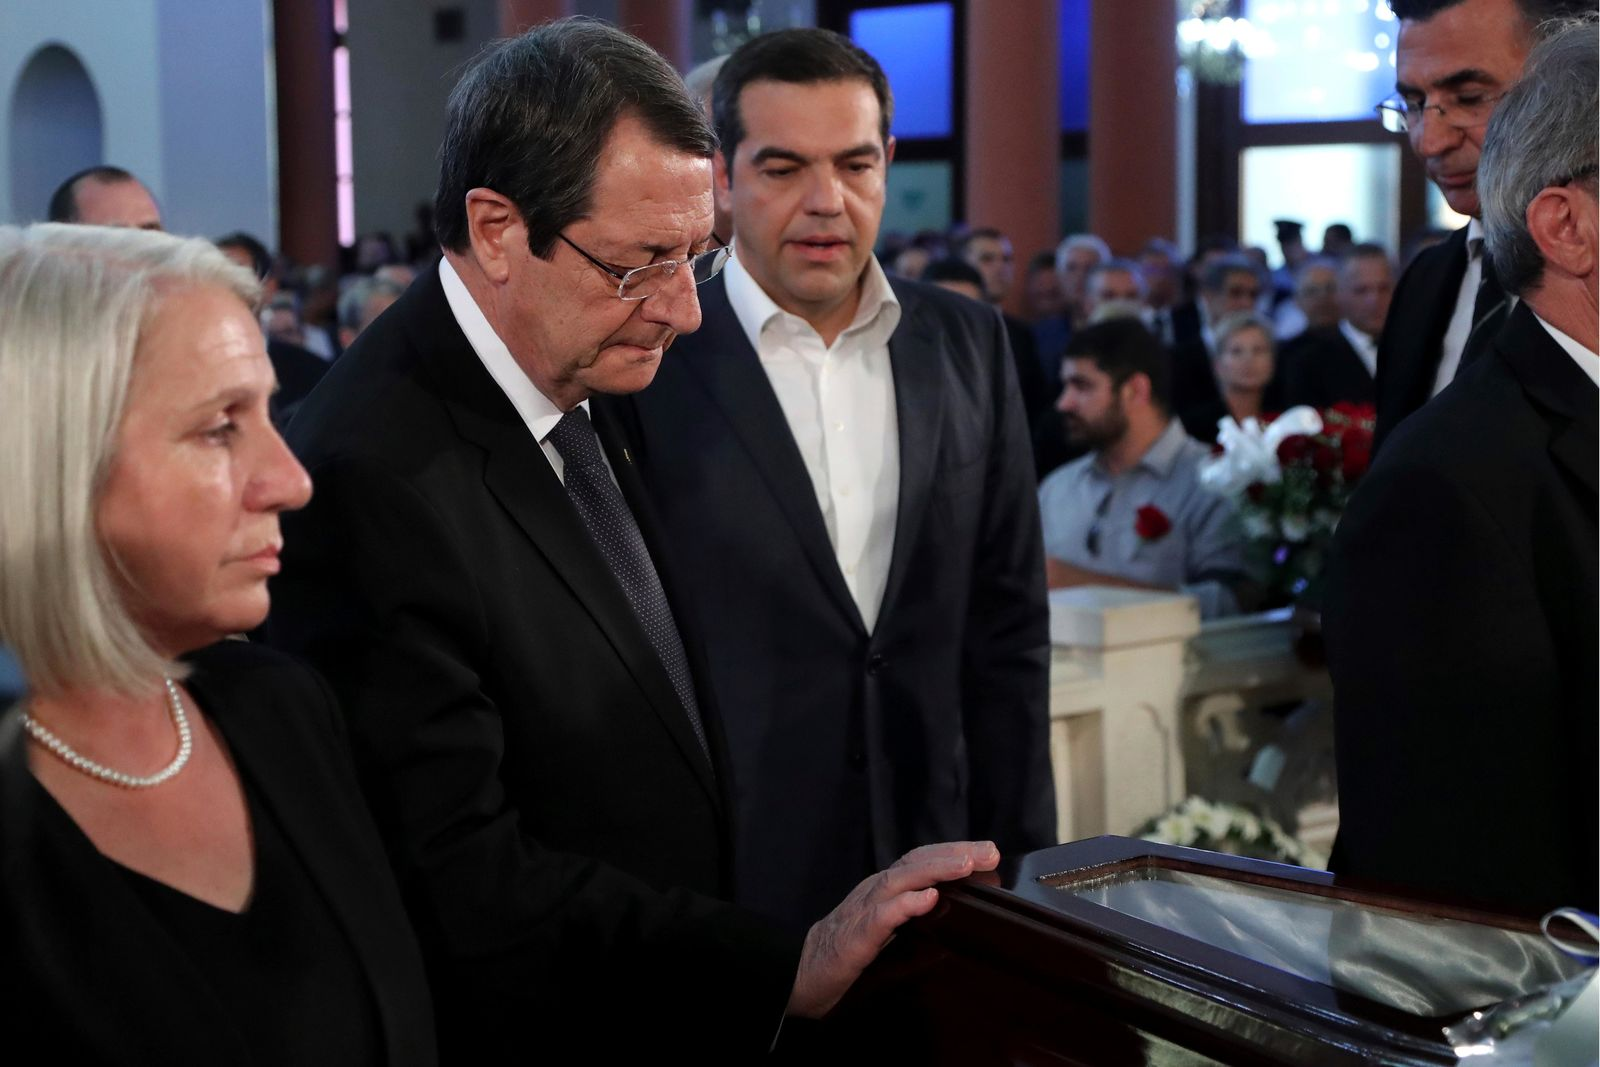 Cyprus' president Nicos Anastasiades, center, touches the coffin of the former Cyprus' President Dimitris Christofias as Greece's Prime minister Alexis Tsipras looks on, during Christofias' state funeral at the Orthodox Christian Church of the Lord's Wisdom in capital Nicosia, Cyprus, Tuesday, June 25, 2019.{ } (AP Photo/Petros Karadjias)